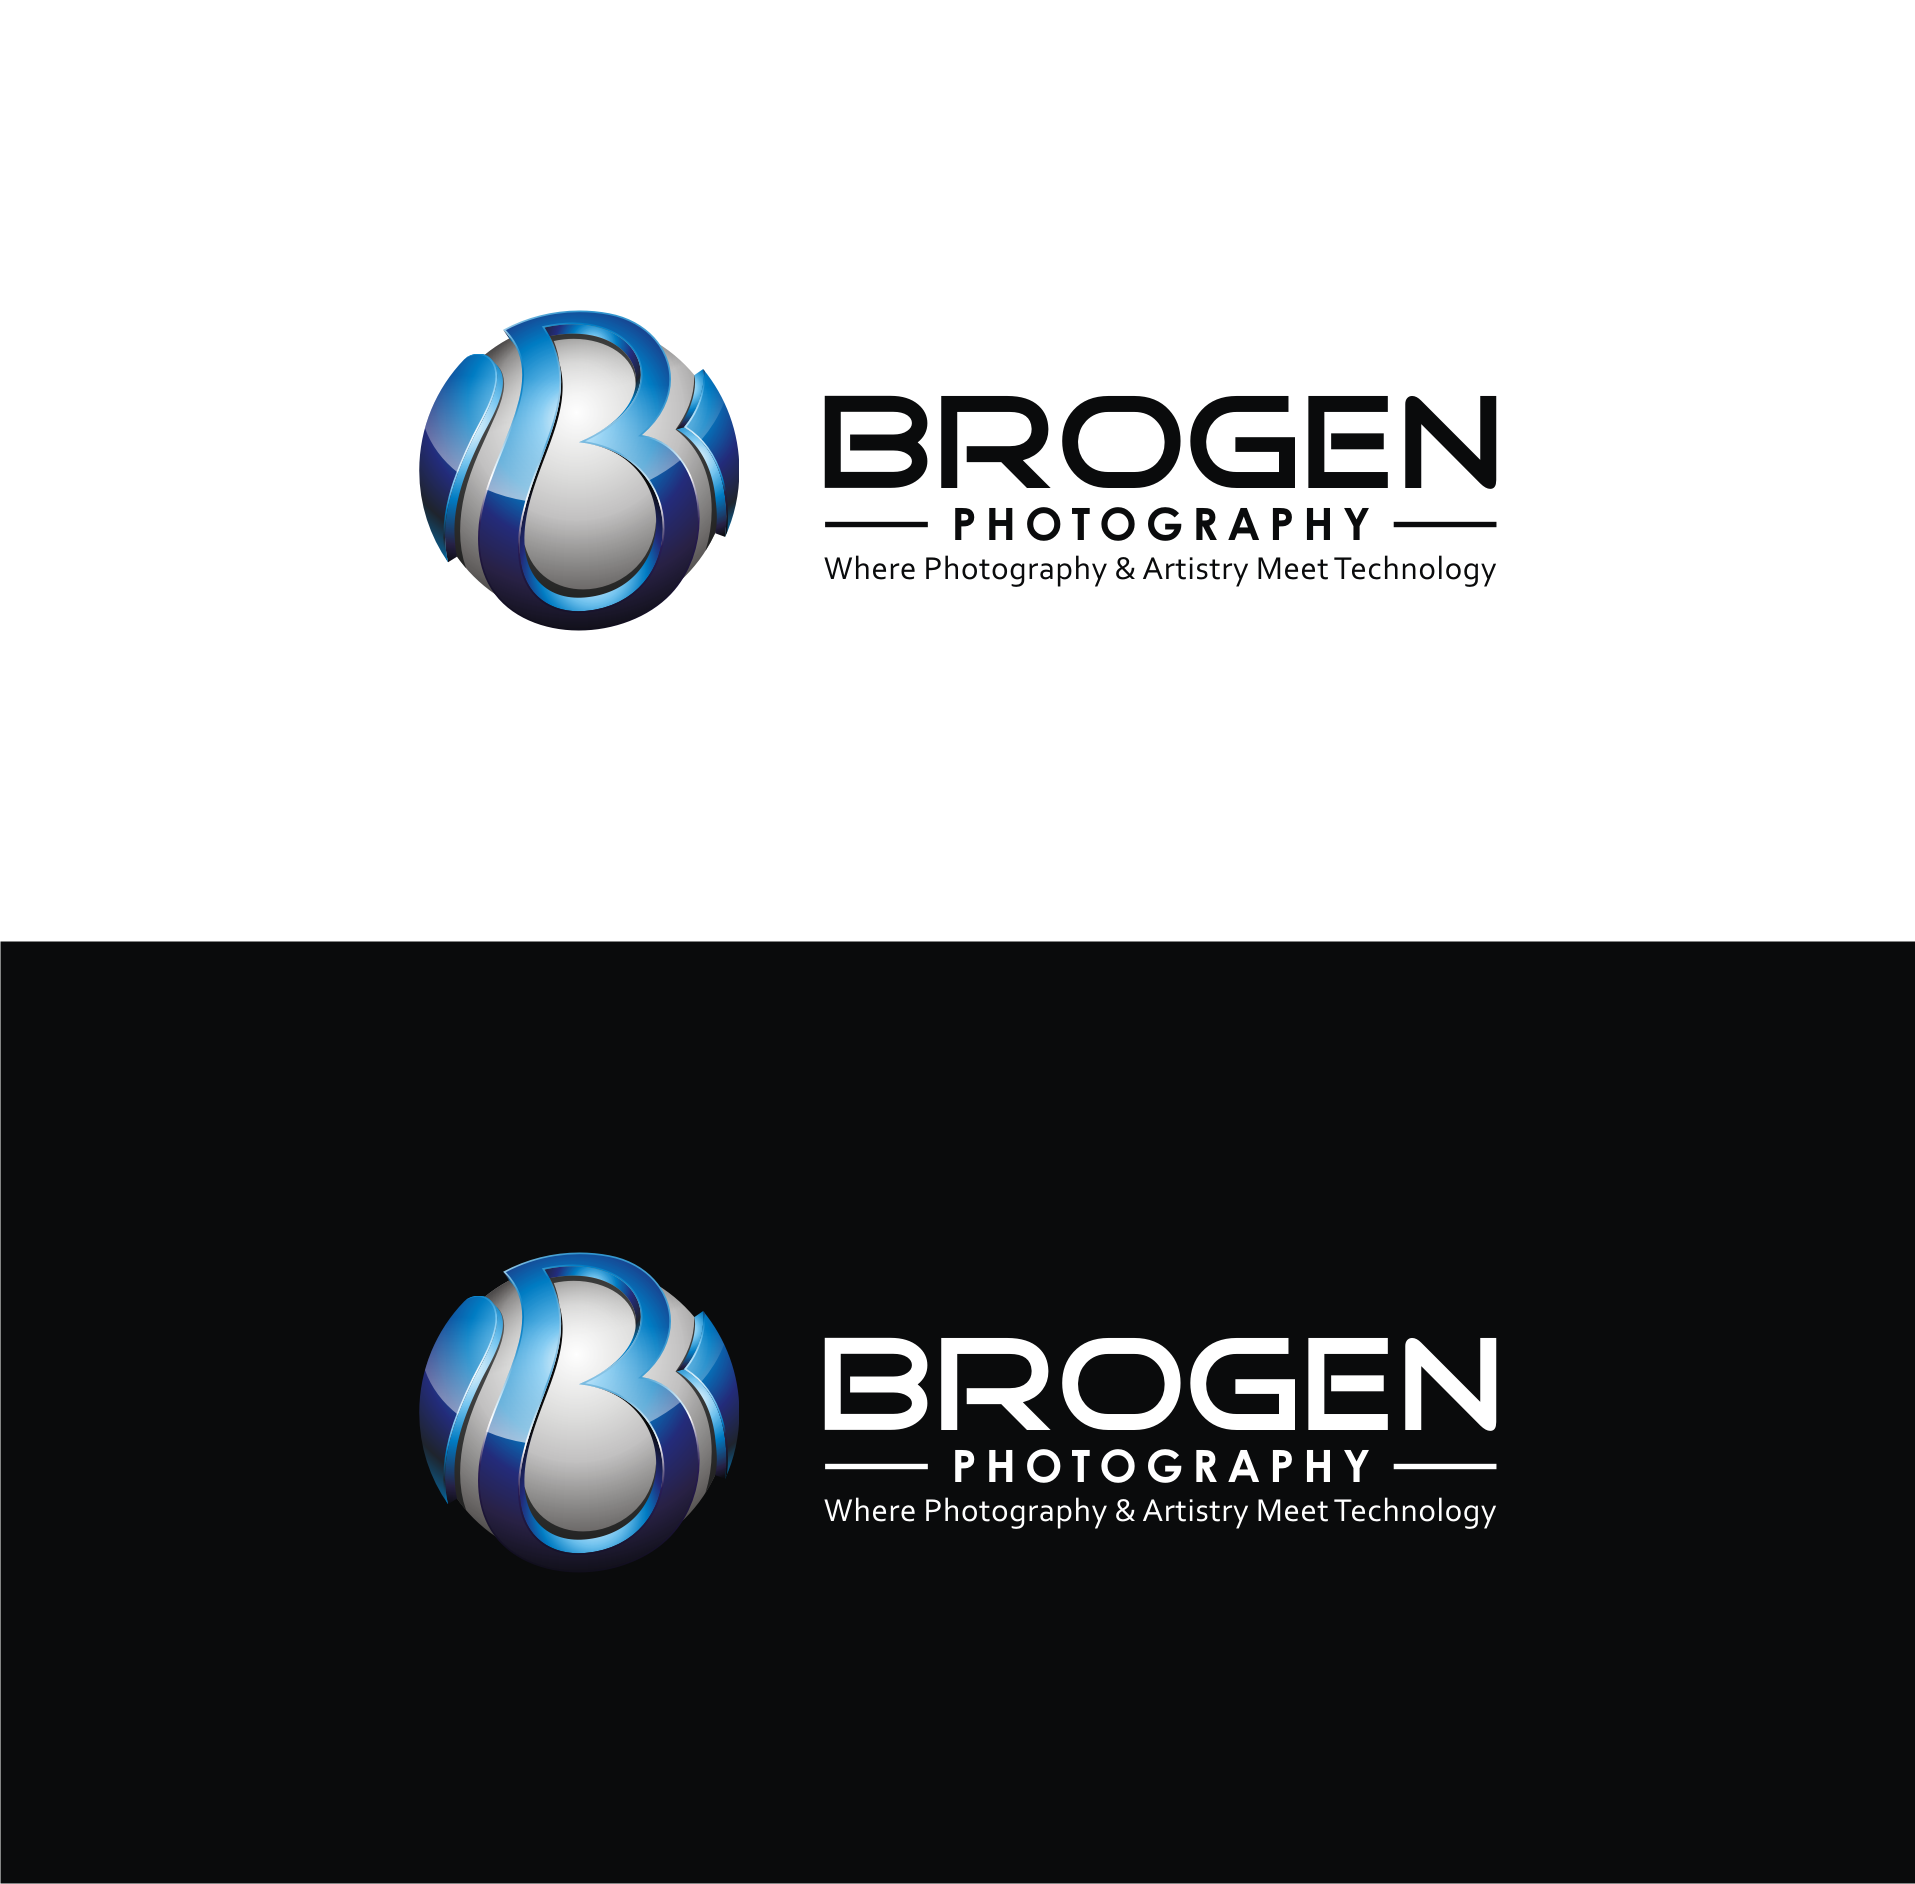 Help Brogen Photography with a new logo